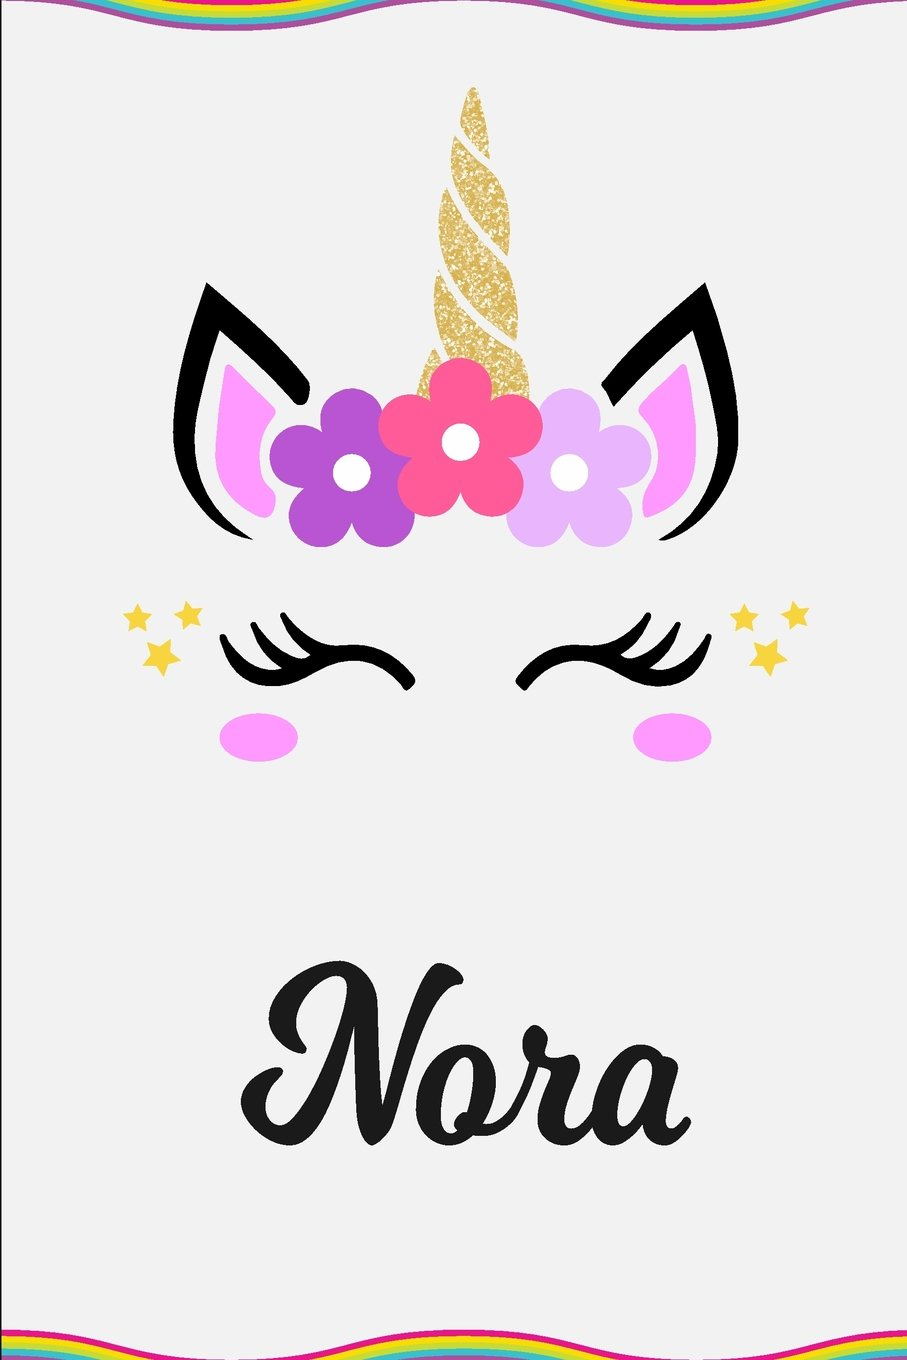 Read Online Nora: Personalized Unicorn Journal Gift  6 x 9 Sized, 100 Pages  Custom Unicorn Journal  Personalized Notebook  Custom Name Notebook  Bespoke Journal  Journals to Write In for Girls ebook